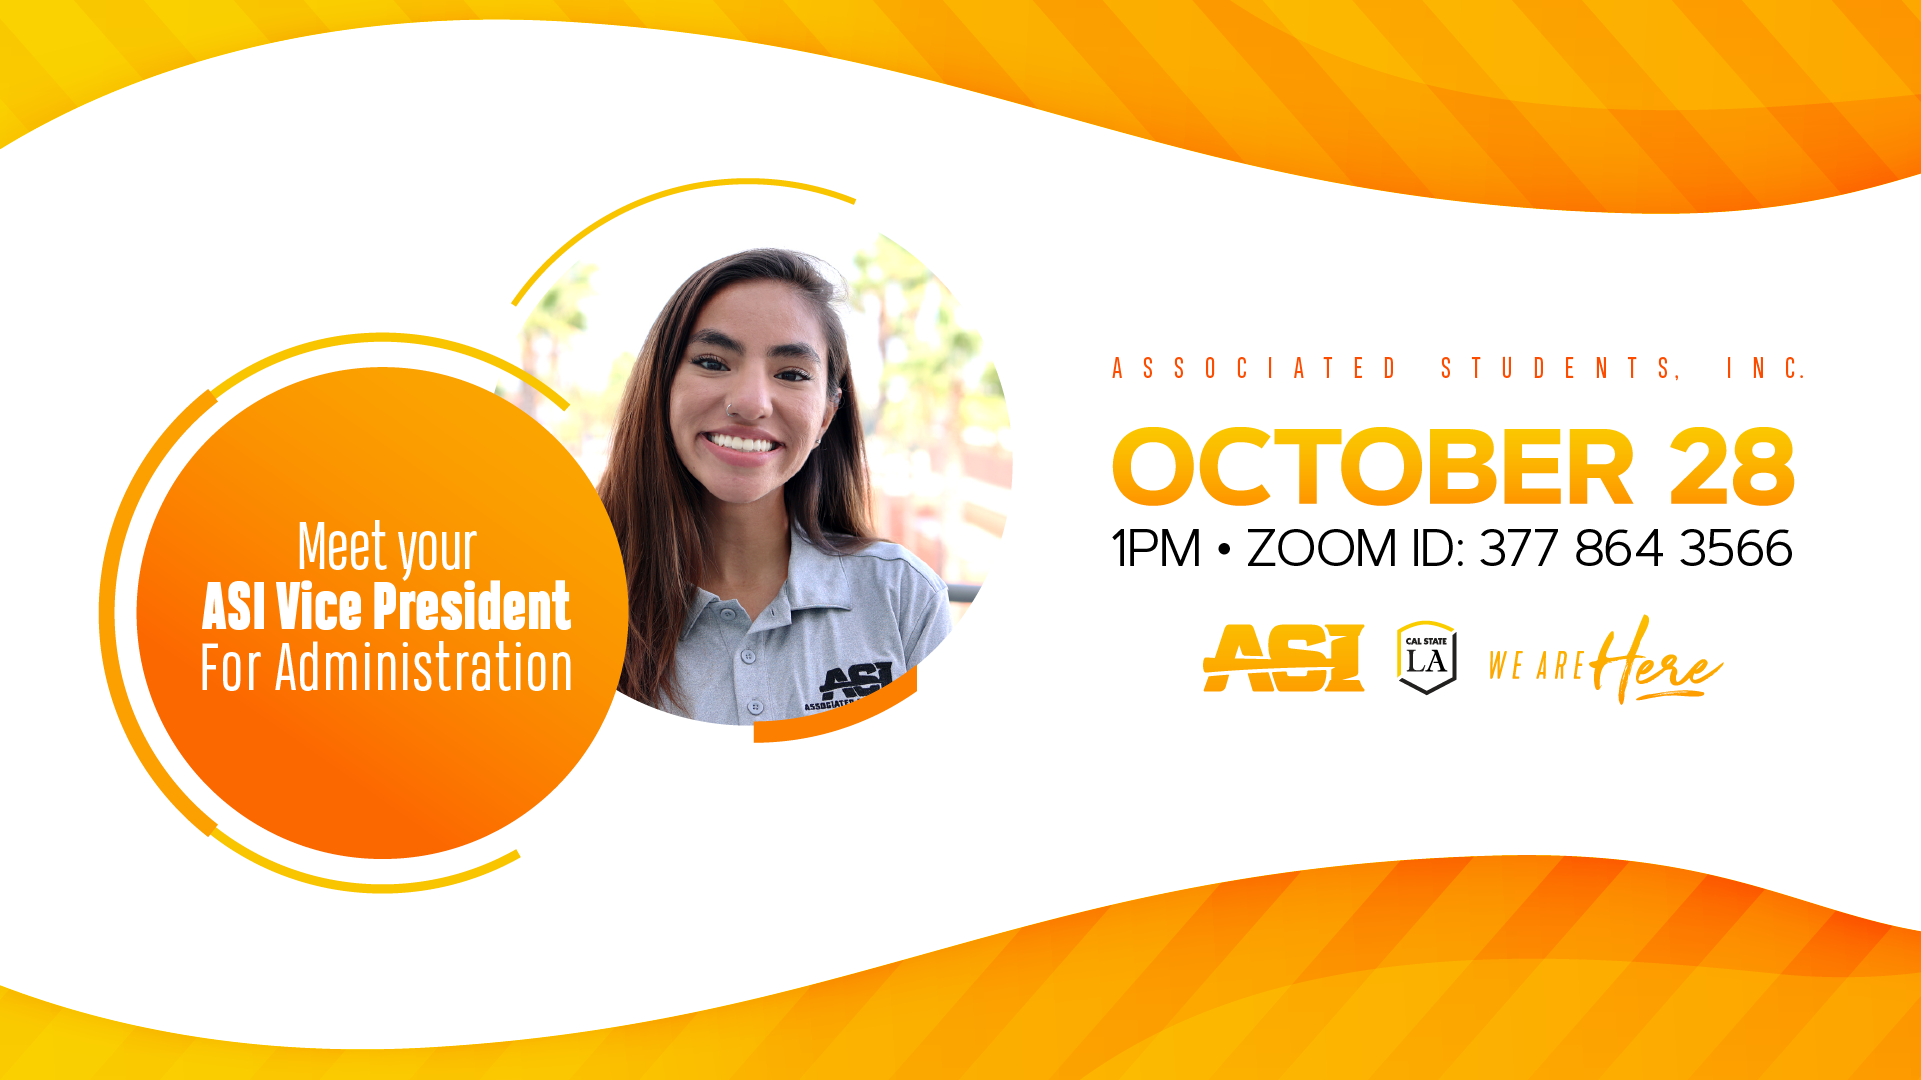 Meet your ASI Vice President for Administration